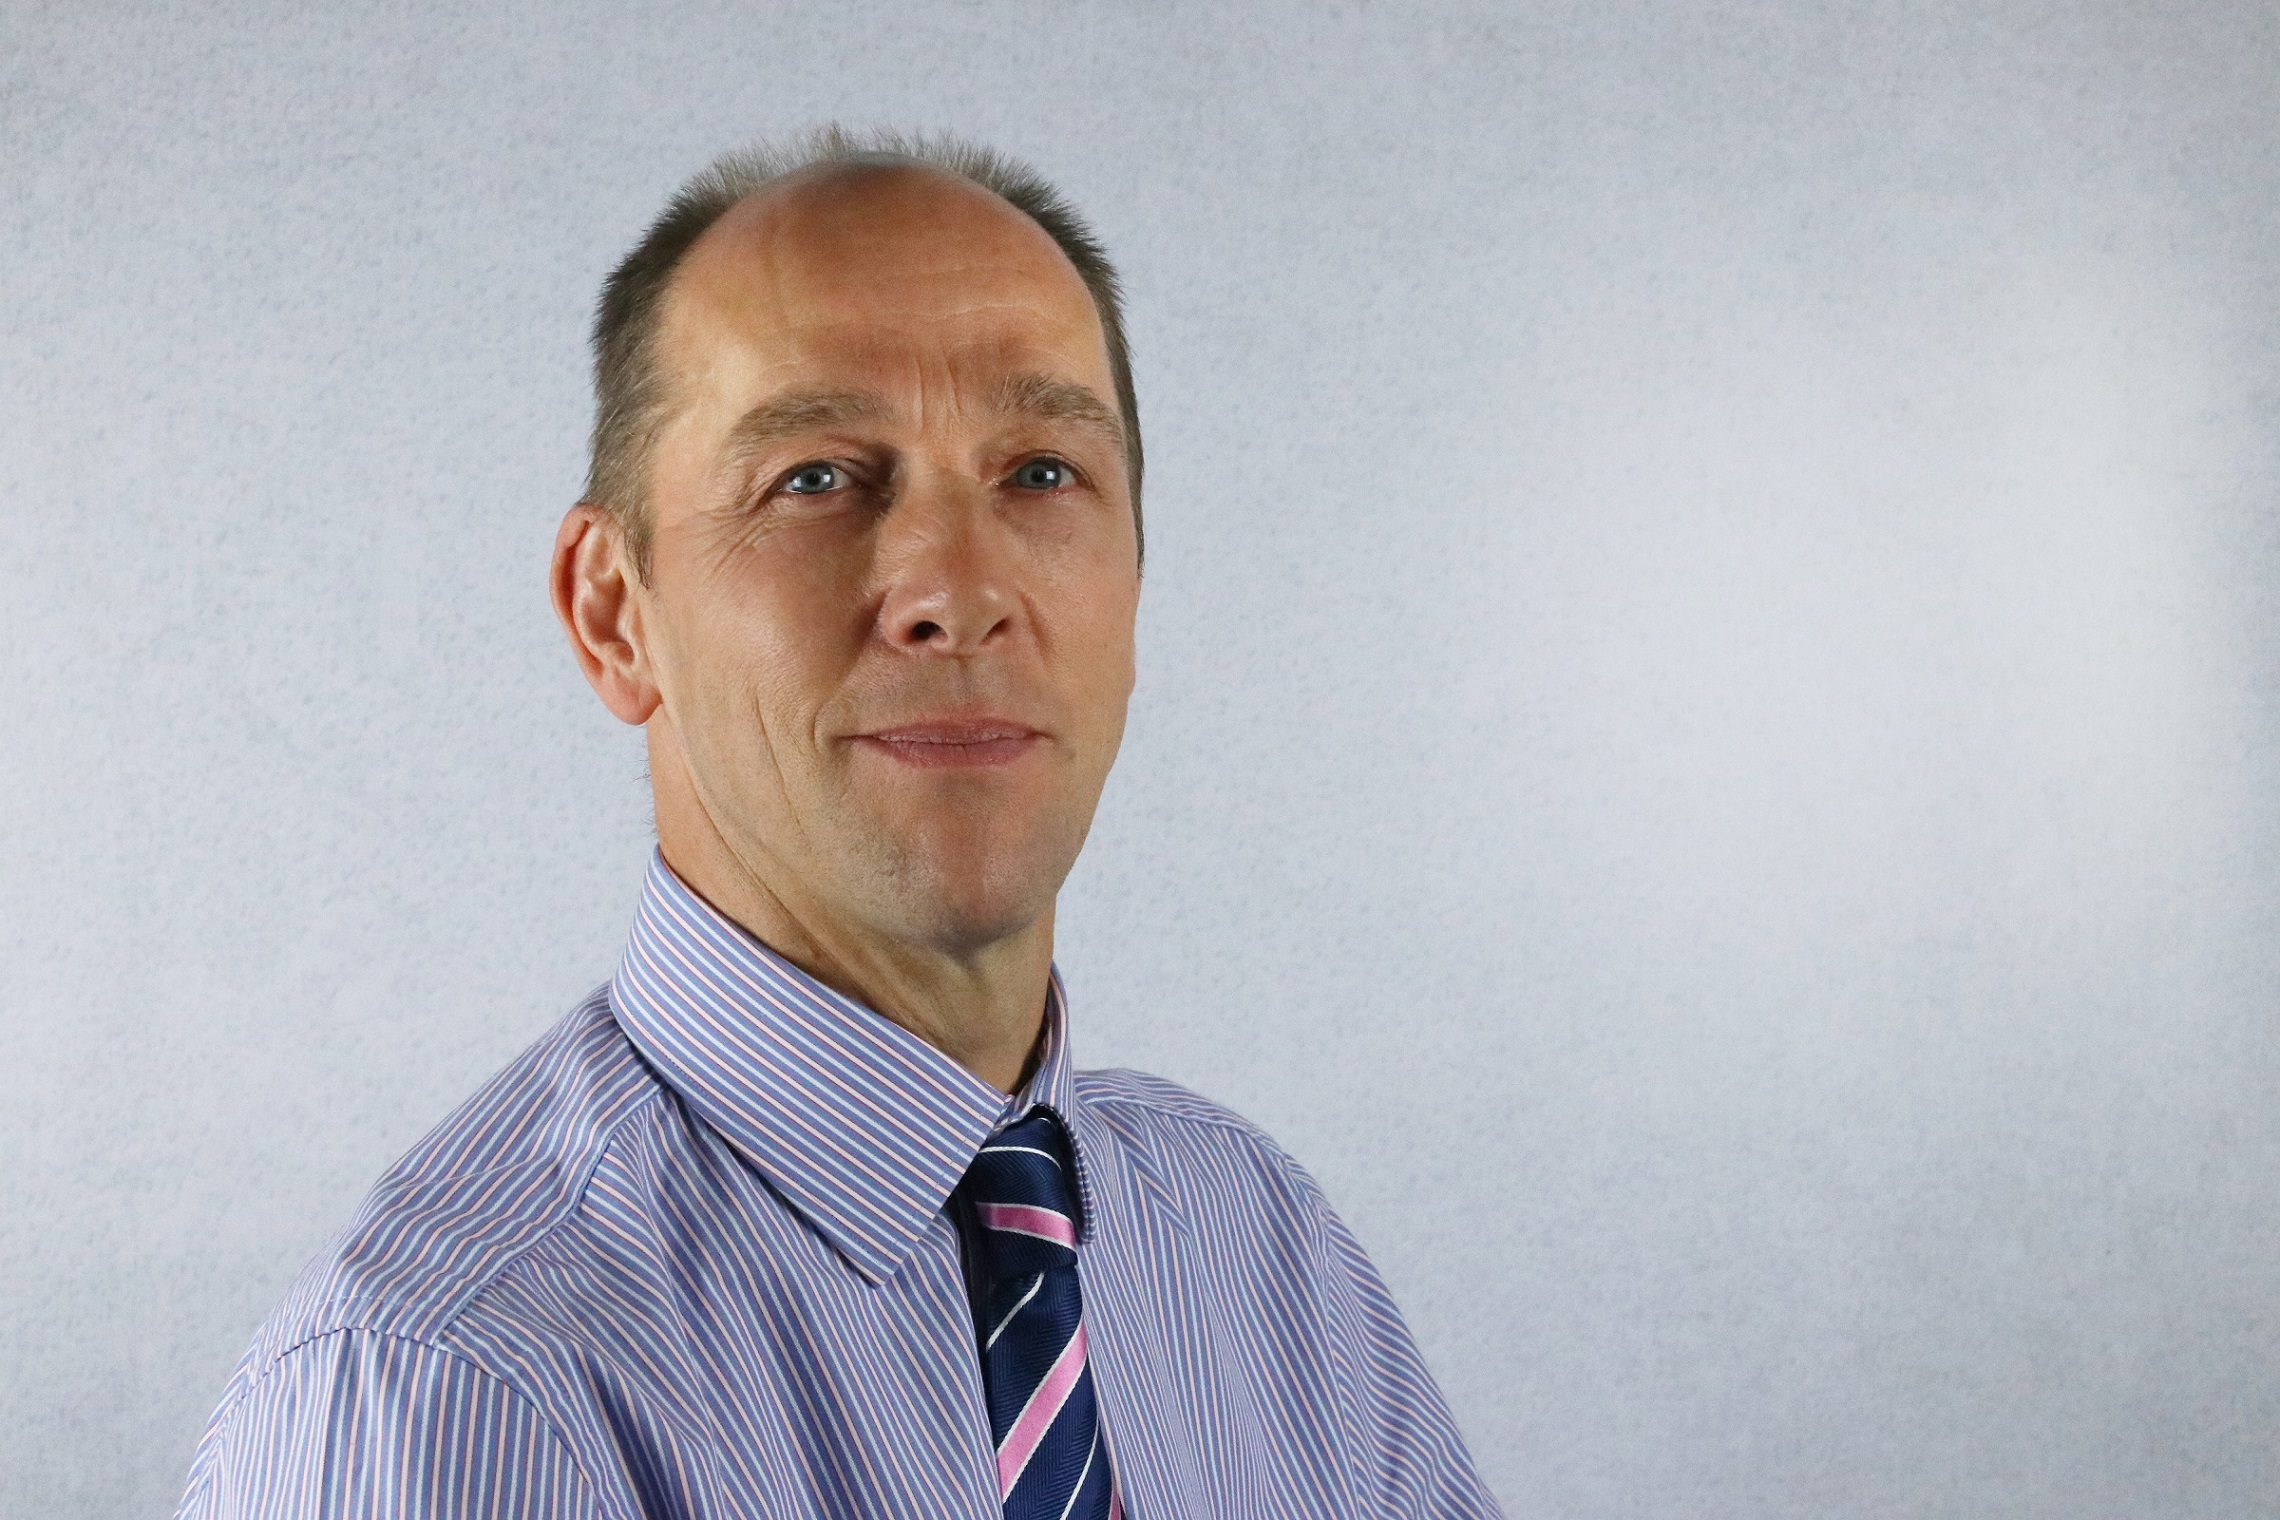 New director appointed at civil and structural engineer BSP Consulting